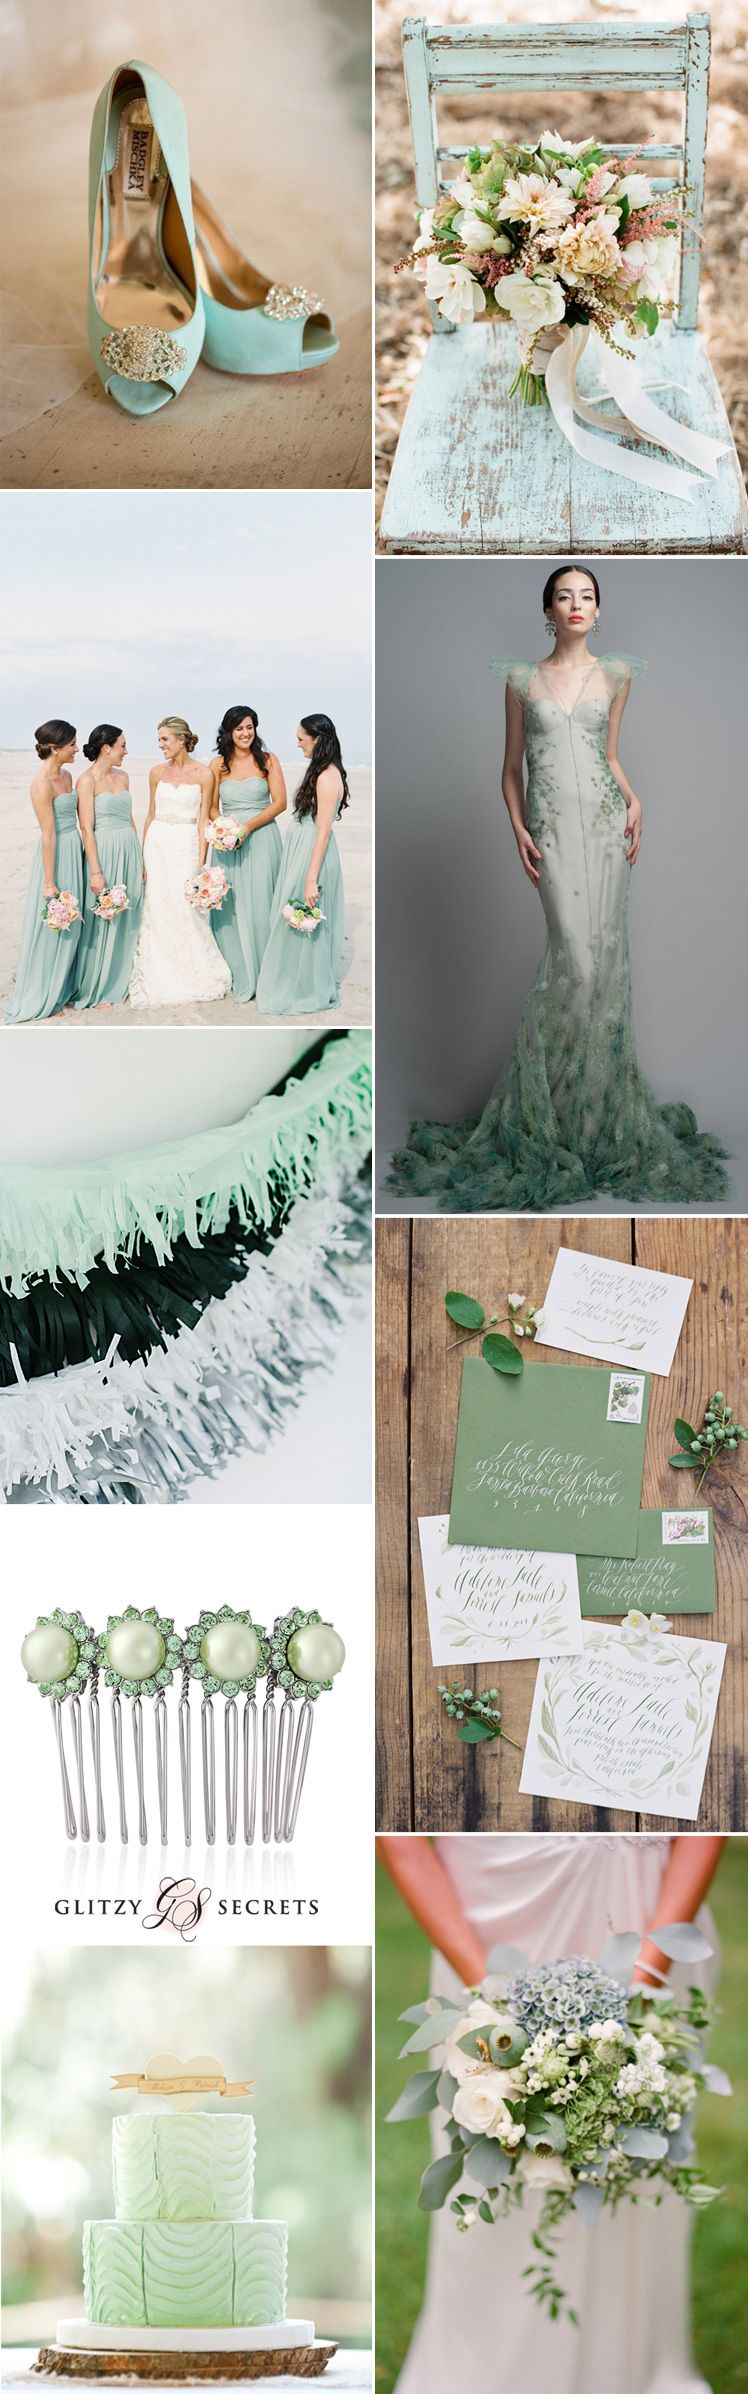 Stunning Seafoam Green Wedding Inspiration